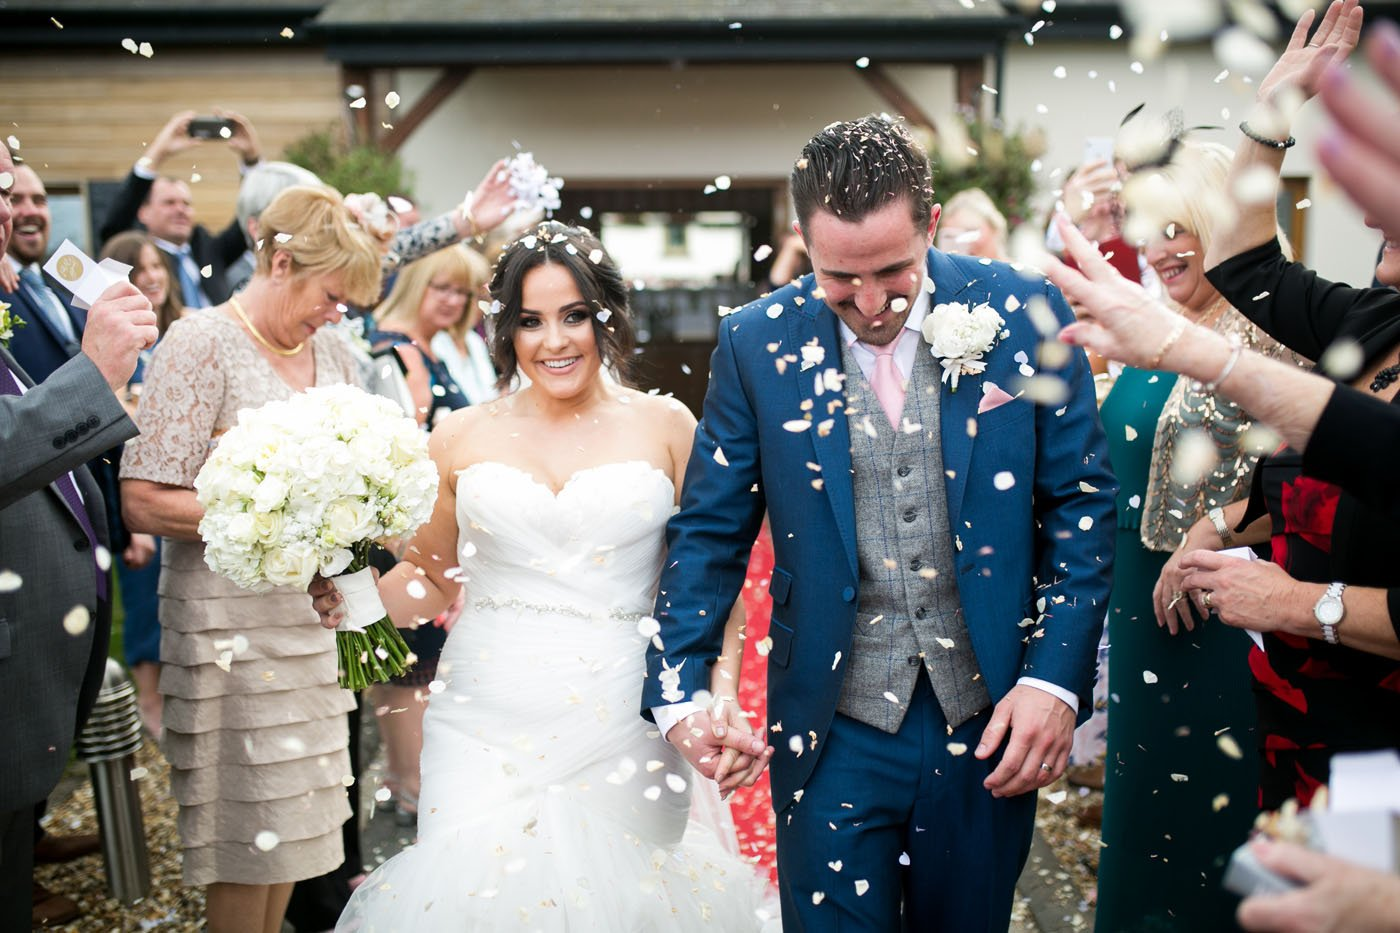 A bride and groom walk past their guests smiling as confetti is thrown on them